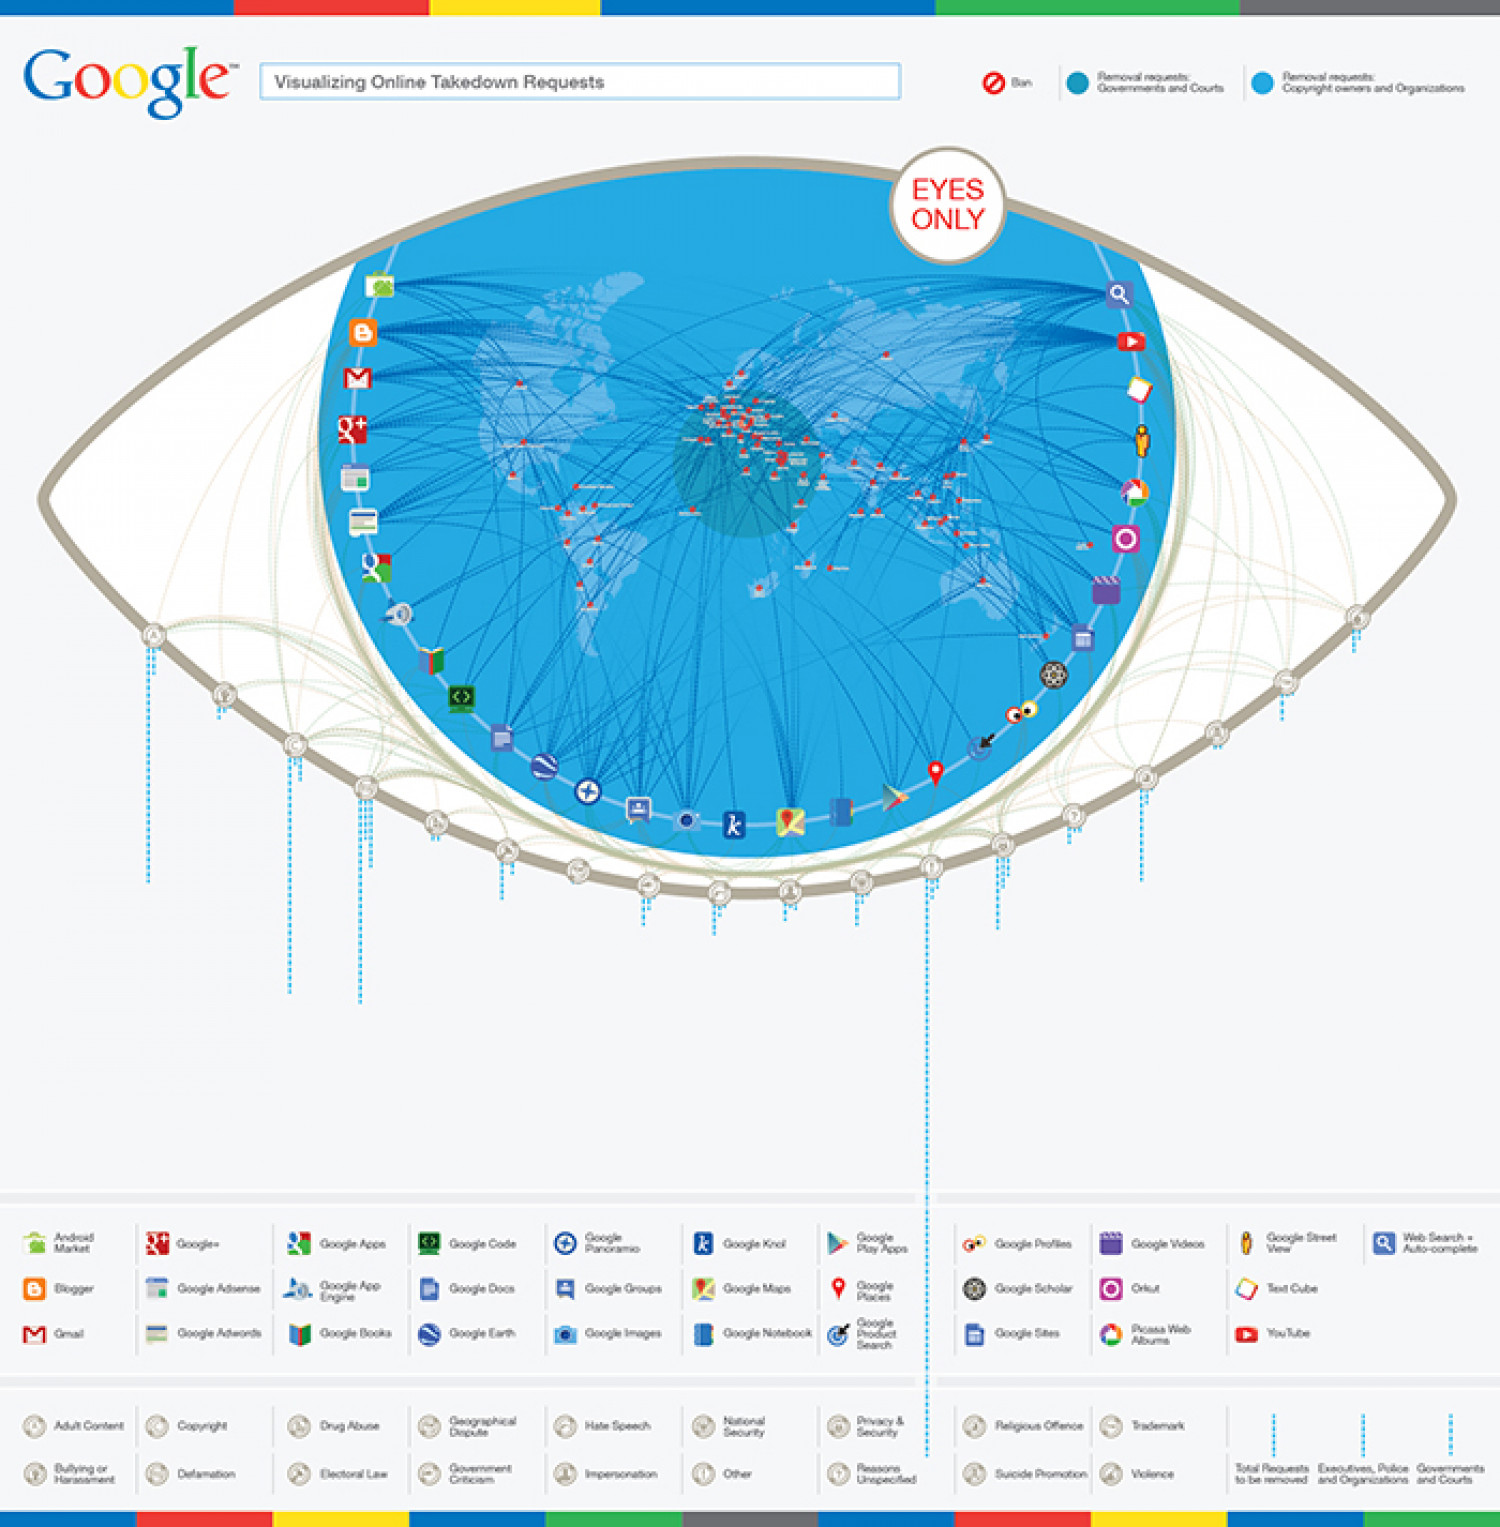 Eyes Only: Google VOTR Infographic